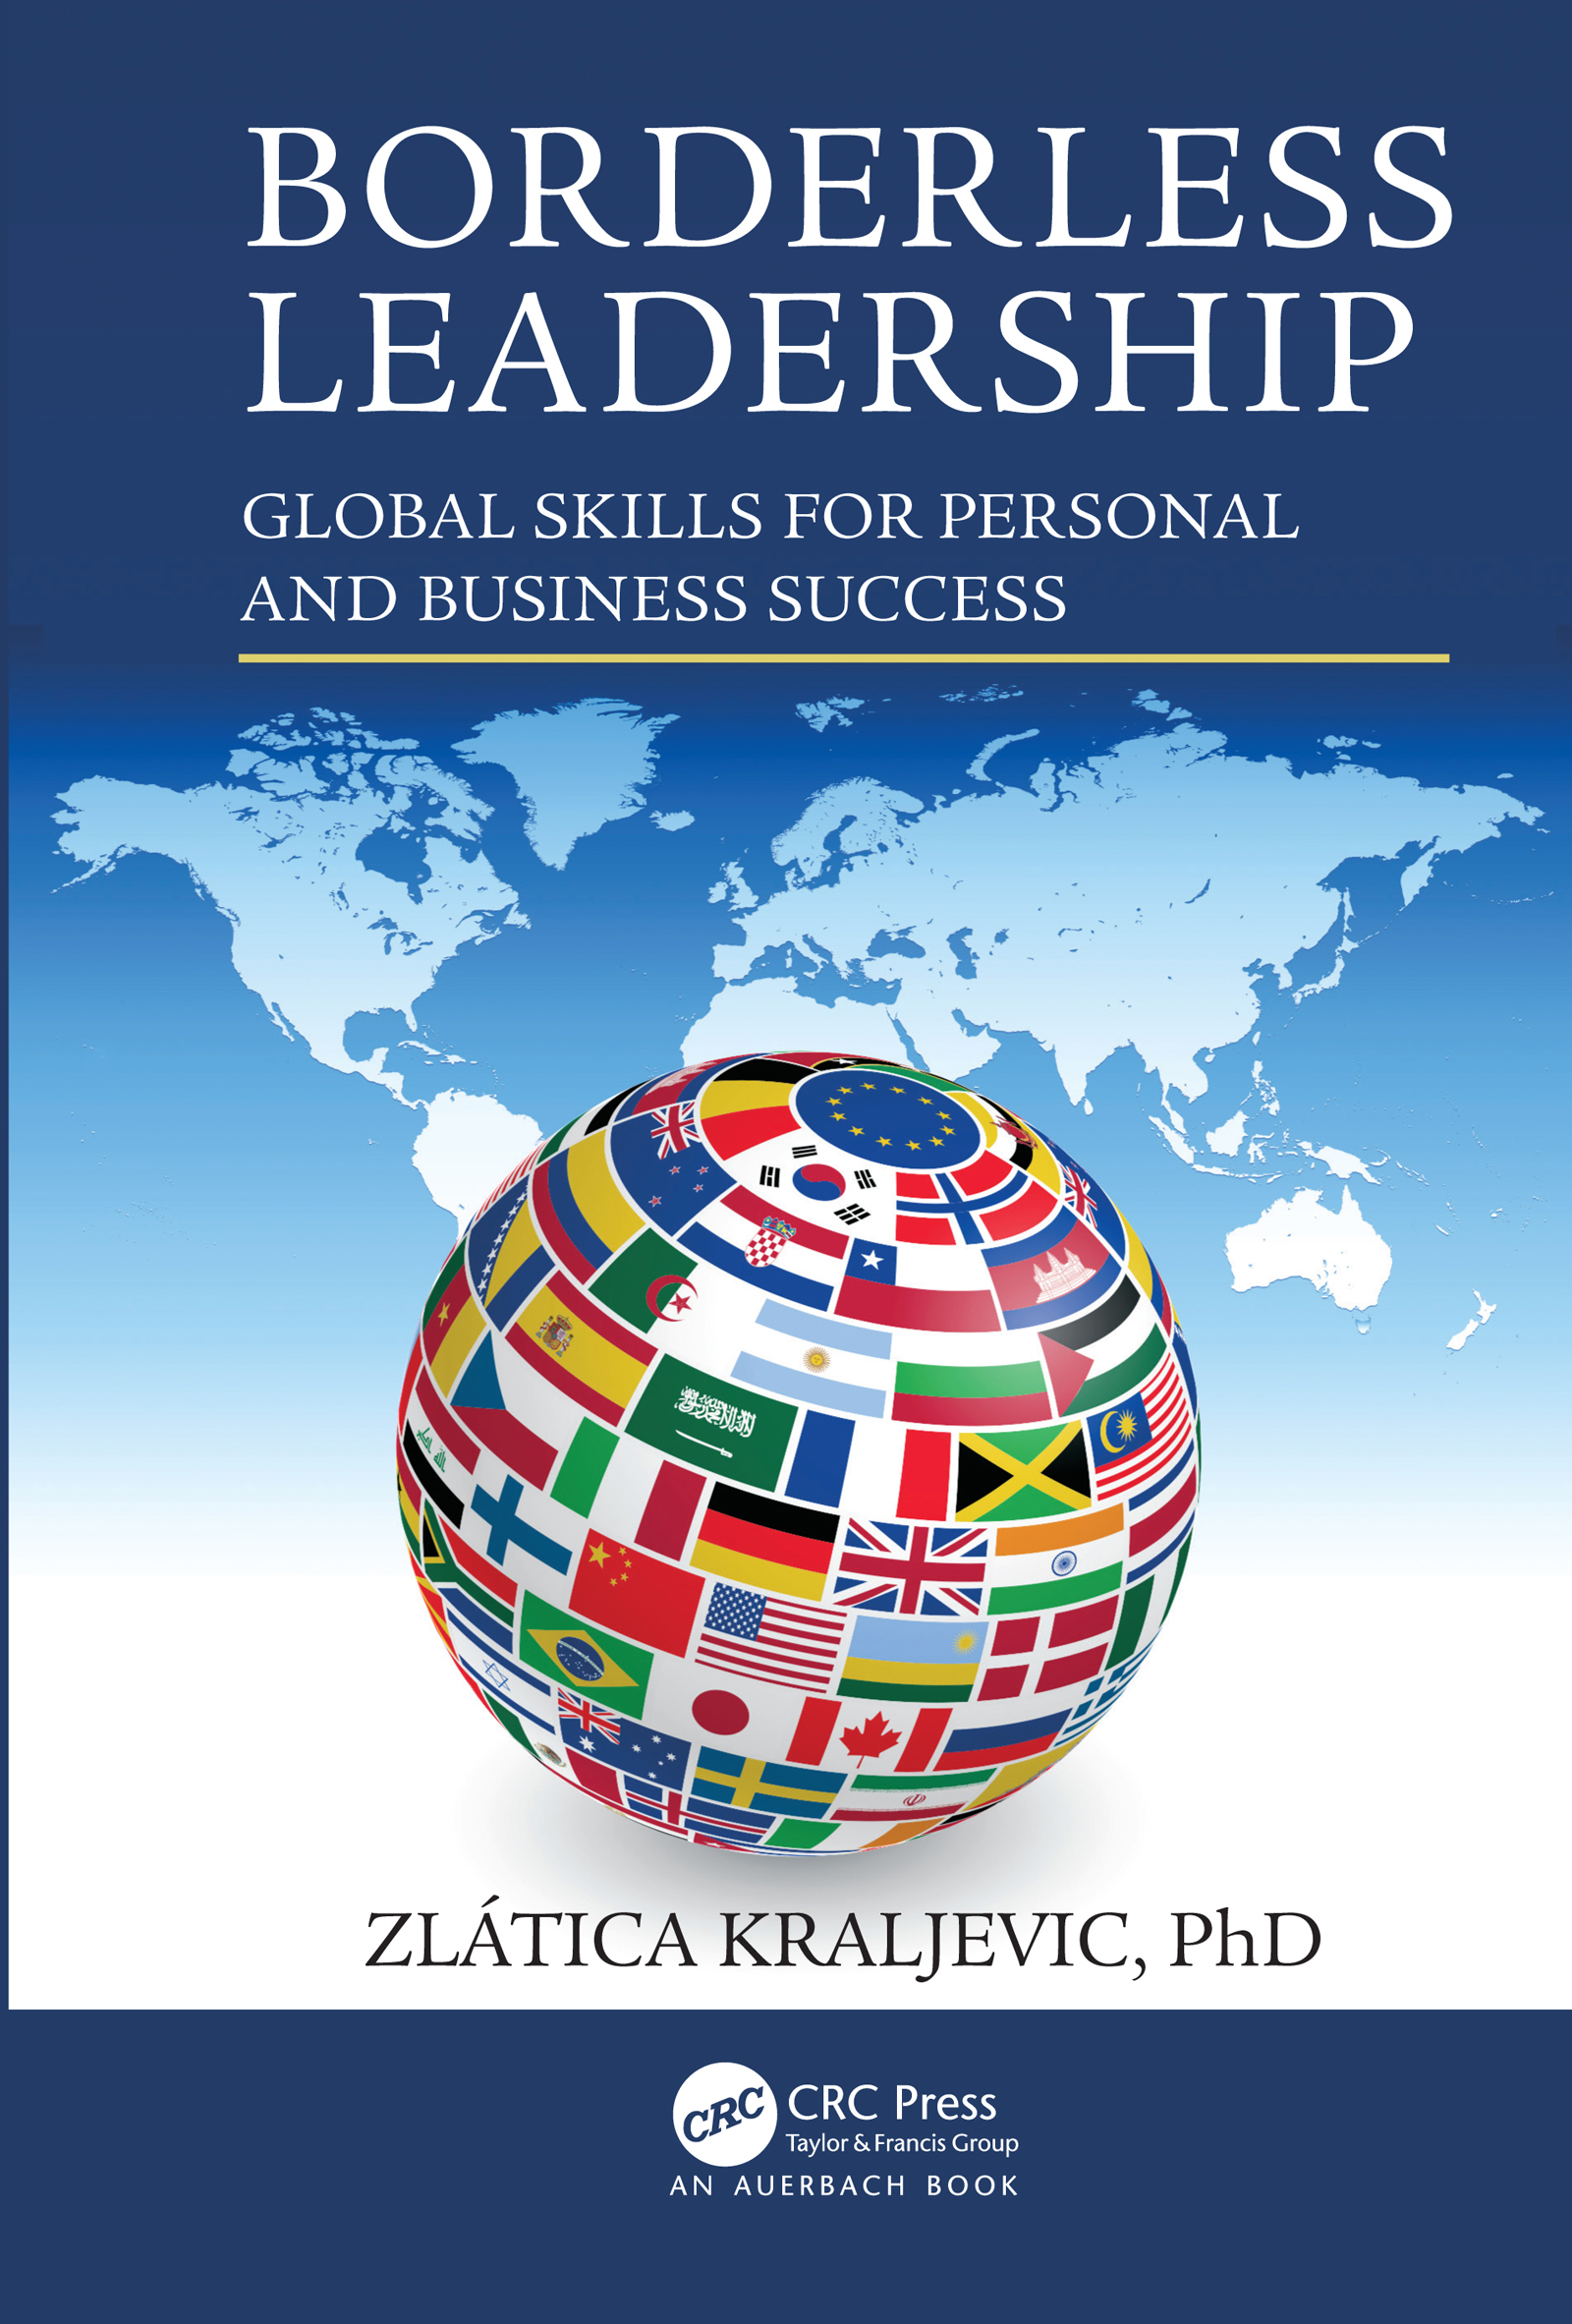 Borderless Leadership: Global Skills for Personal and Business Success book cover